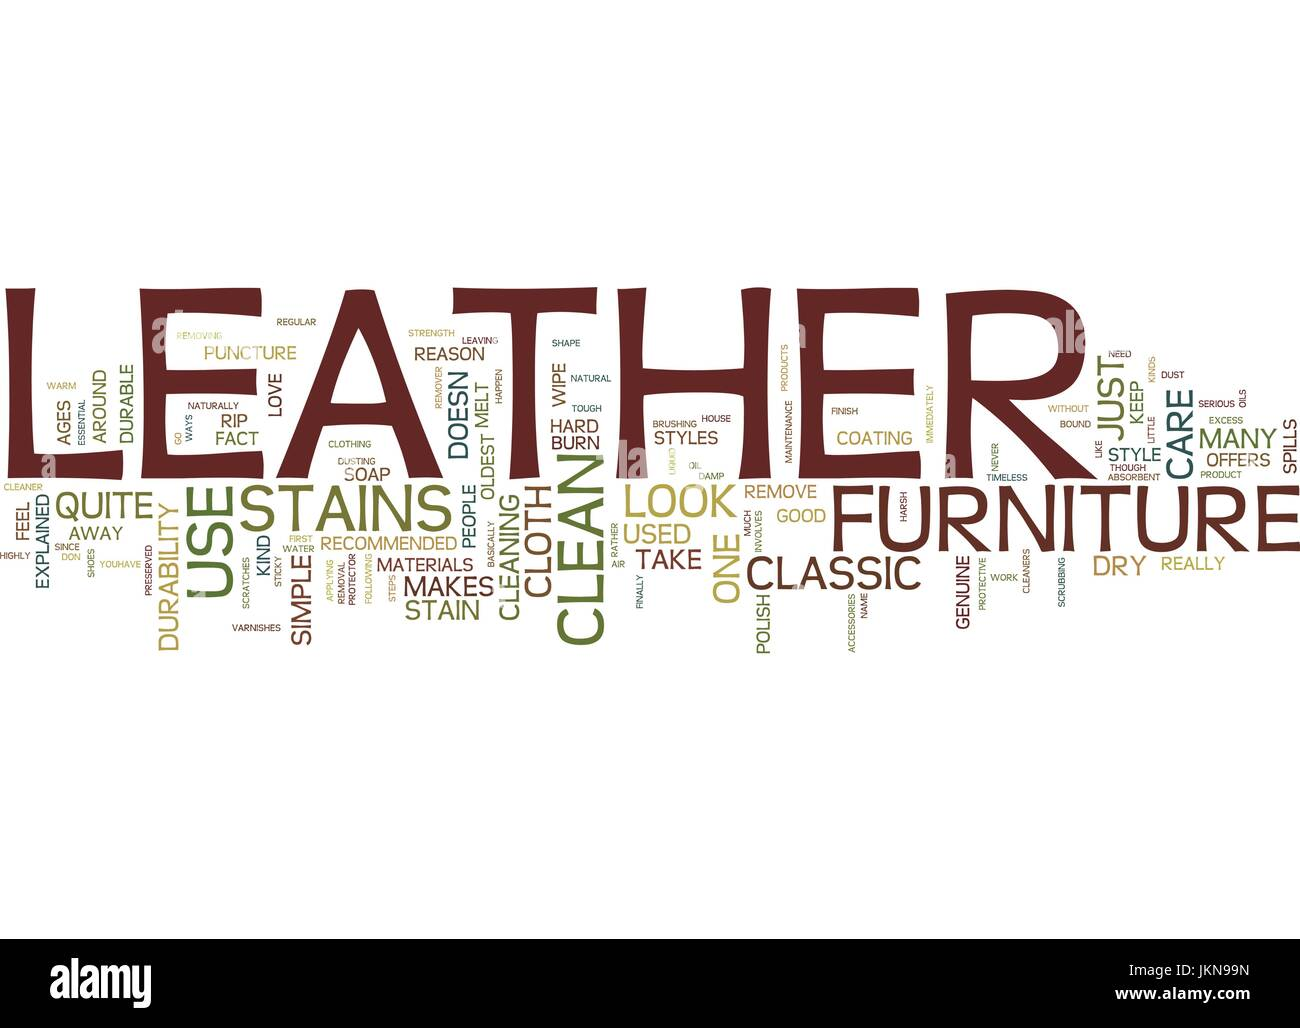 LEATHER THE CLASSIC FURNITURE Text Background Word Cloud Concept - Stock Vector